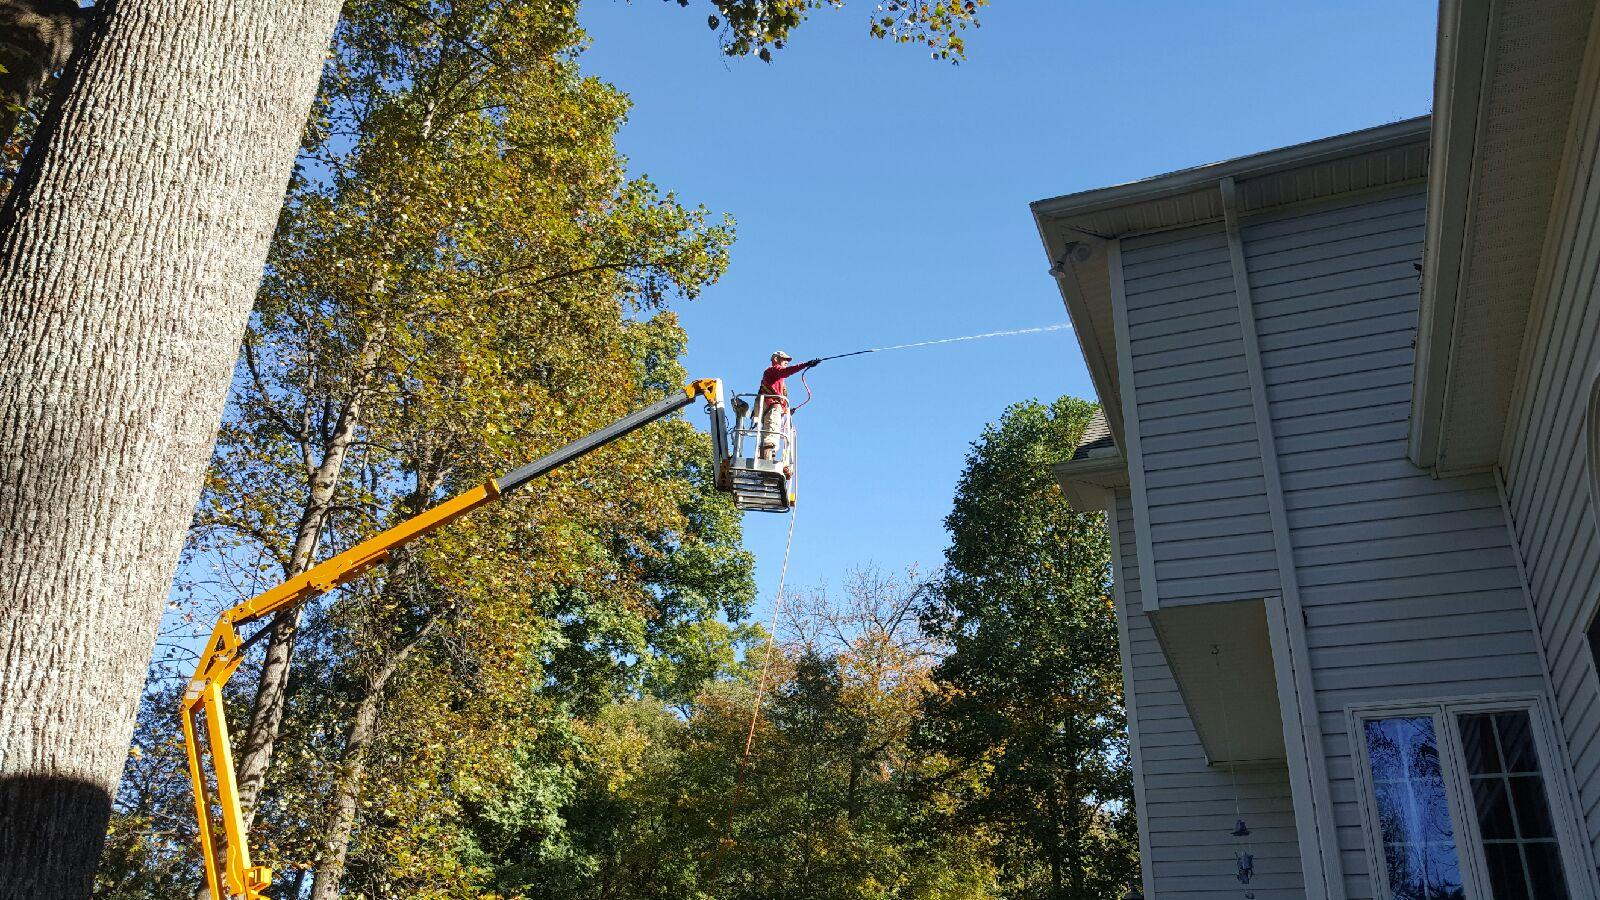 Boom Lift | Pressure Washing Company in Fayetteville PA